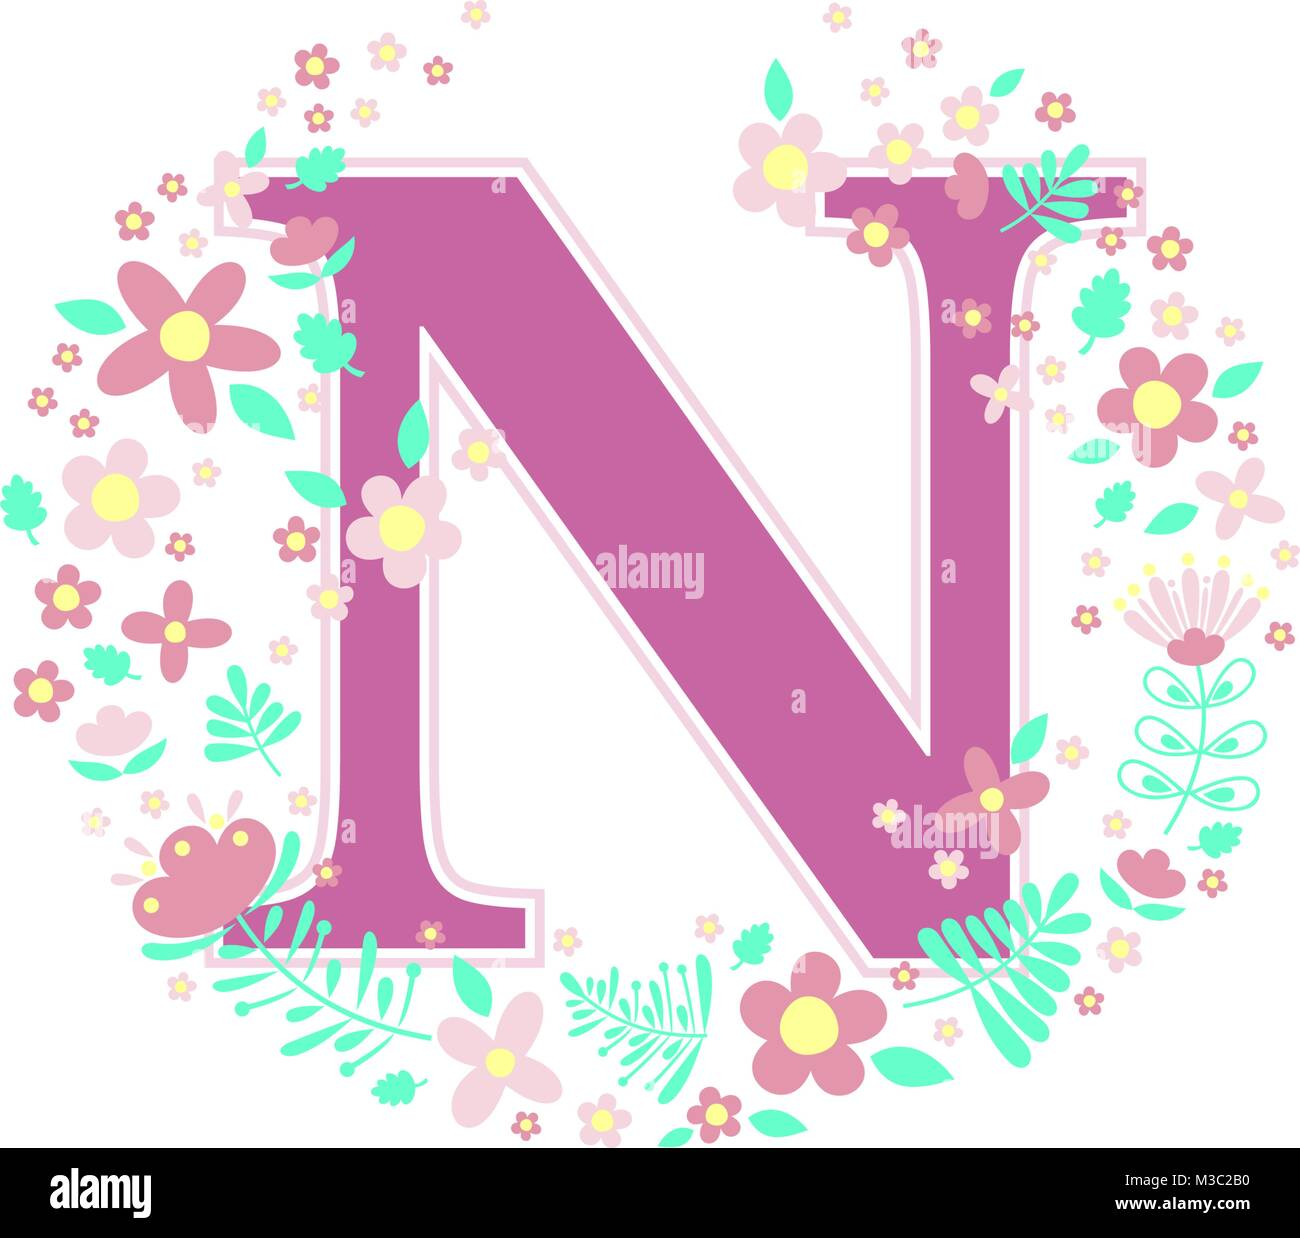 Letter N Flowers Stock Photos & Letter N Flowers Stock Images - Alamy